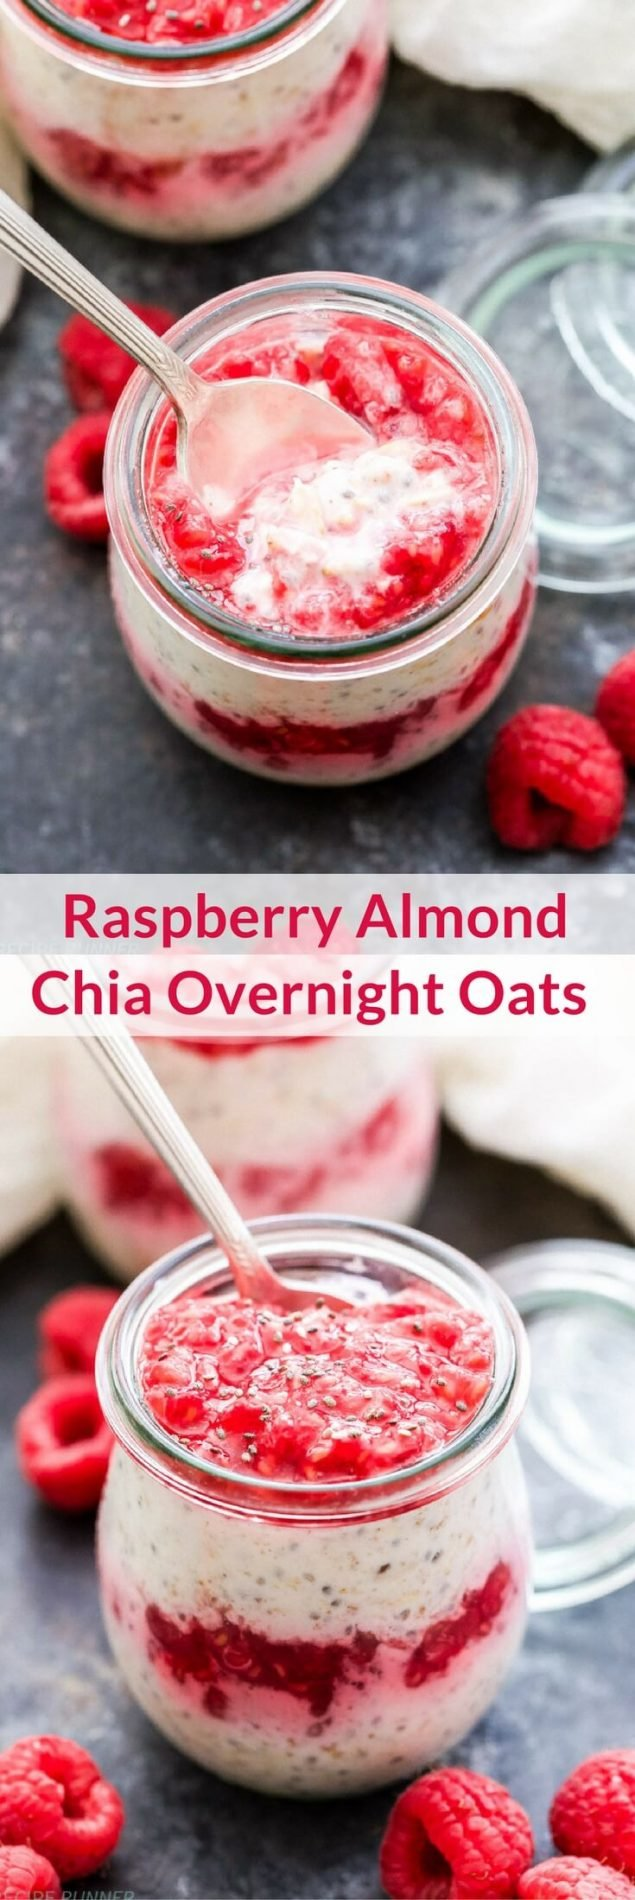 Raspberry Almond Chia Overnight Oats are perfect for a grab-and-go breakfast or snack. Make them tonight and have breakfast waiting for you in the morning!